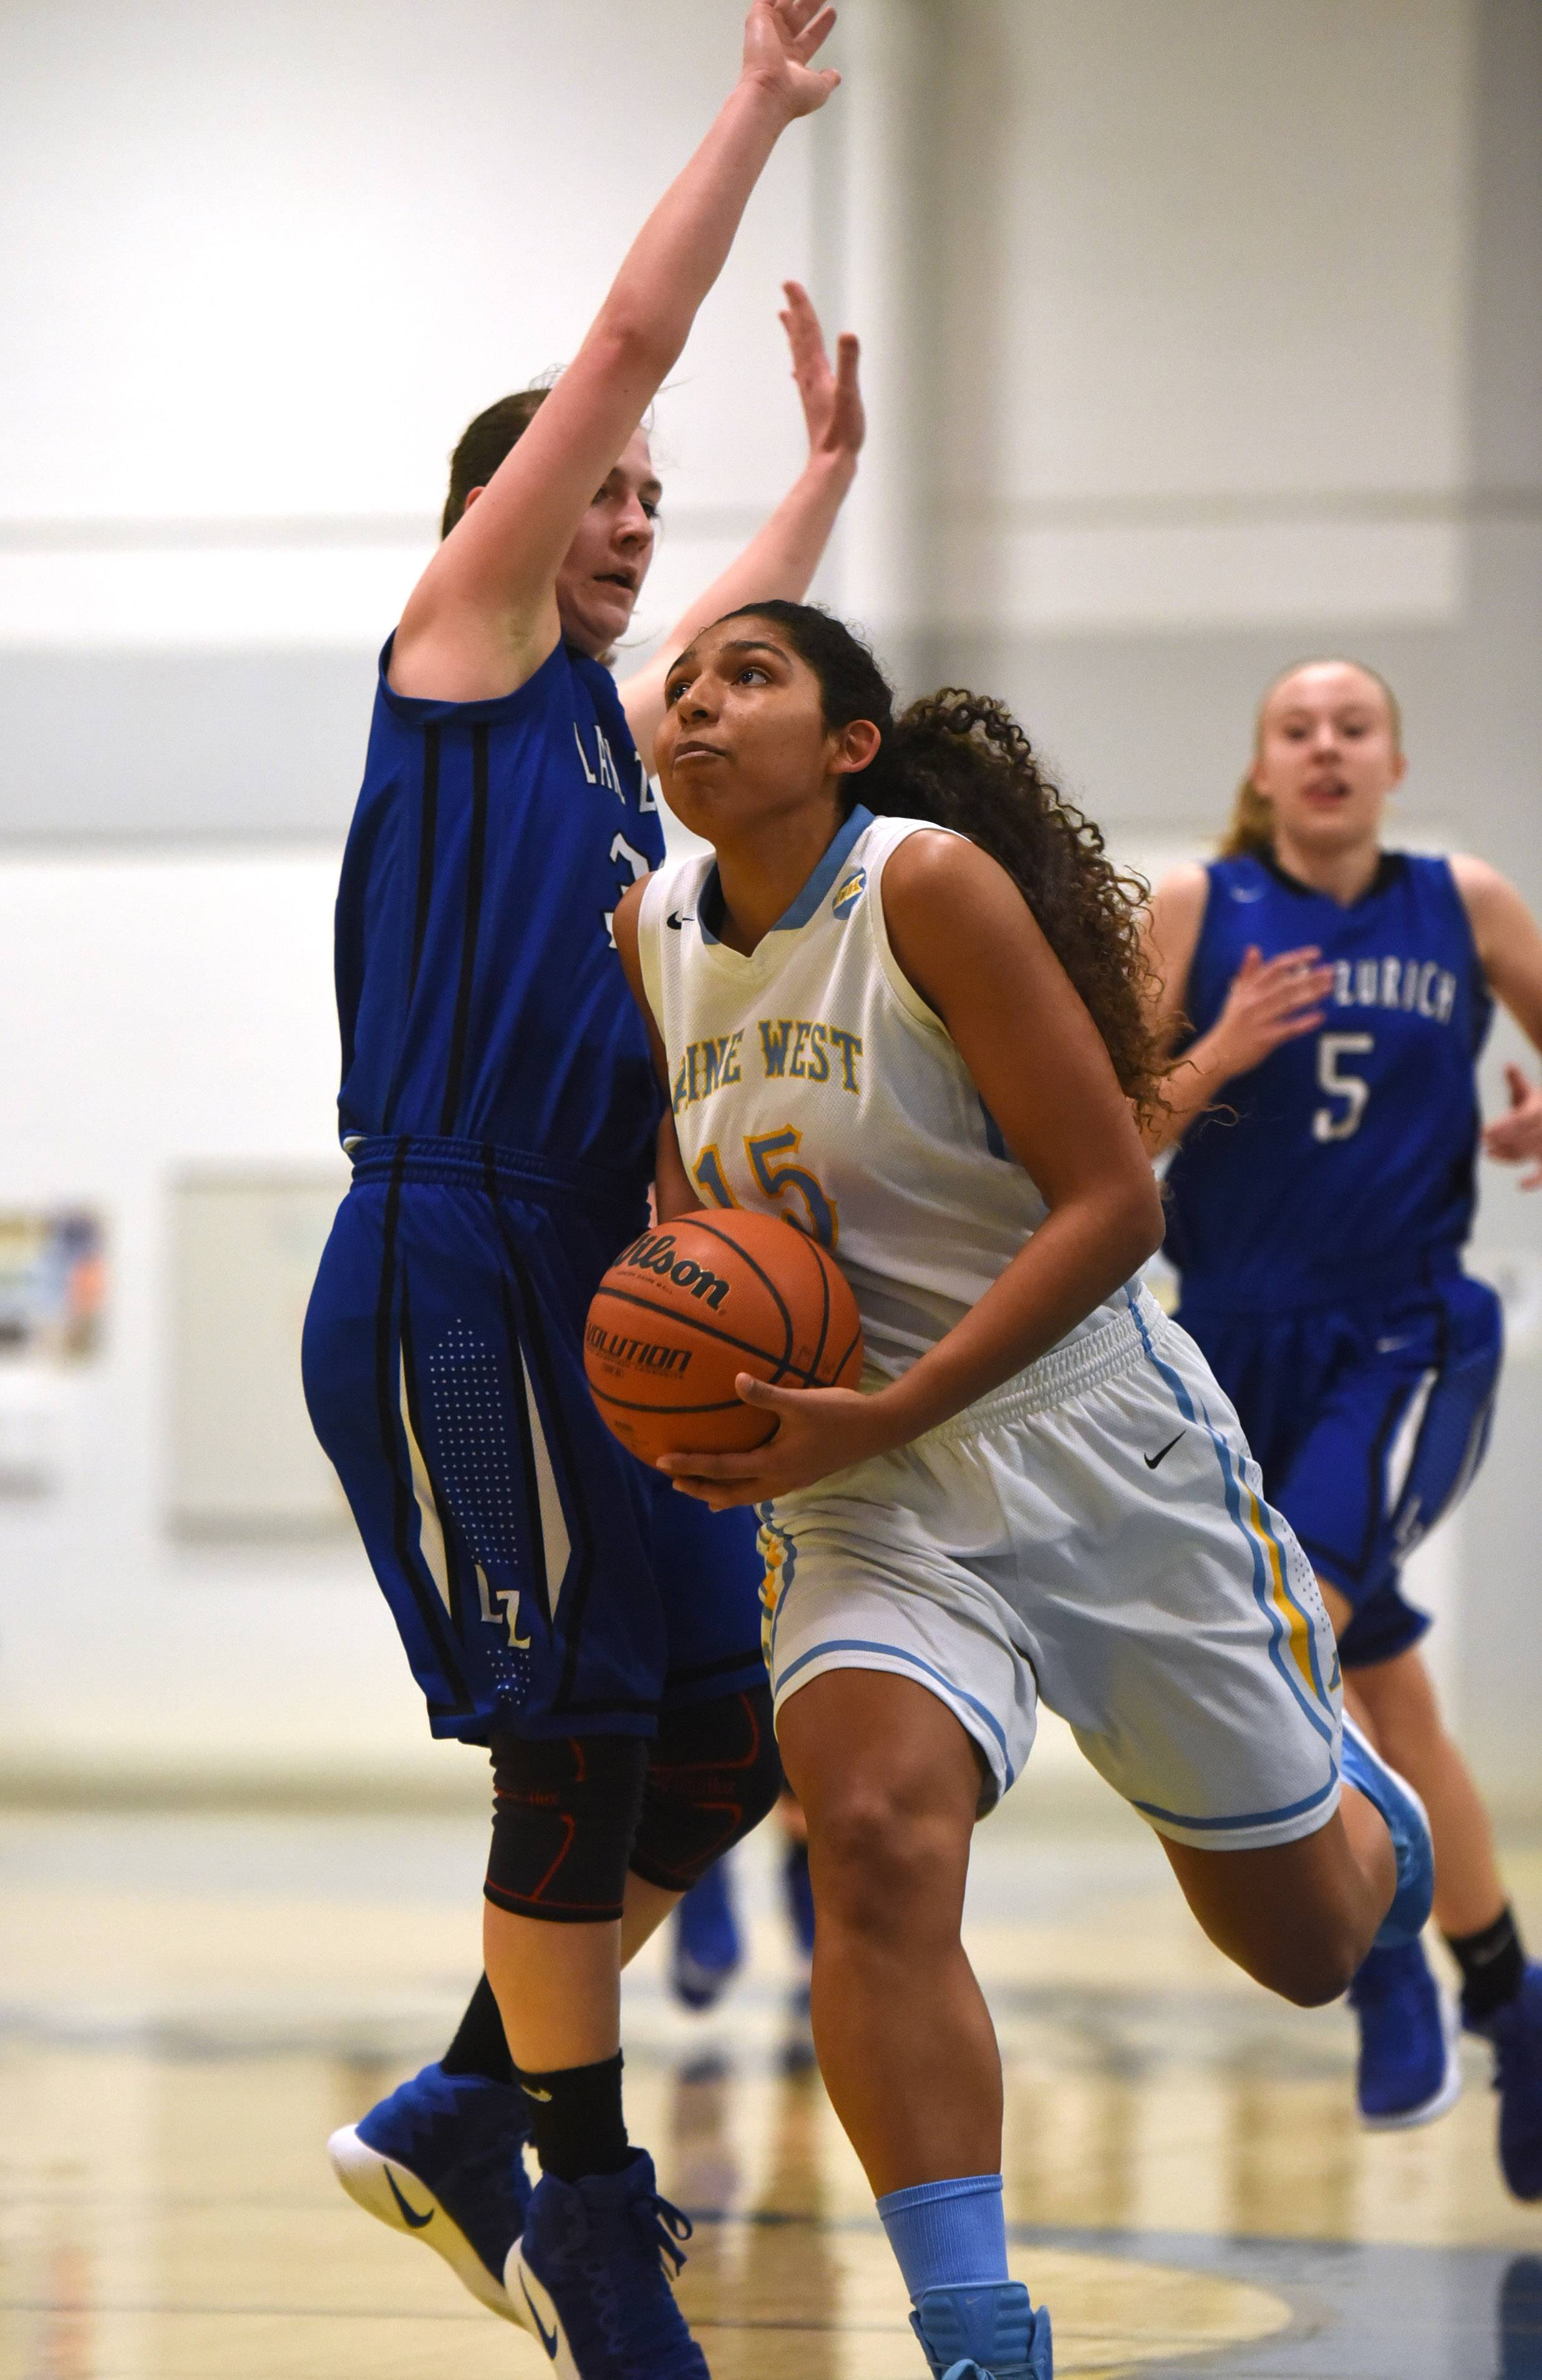 Maine West's Rachel Kent (15) heads to the basket past Lake Zurich's Grace Kinsey during Monday's girls basketball game in Des Plaines.